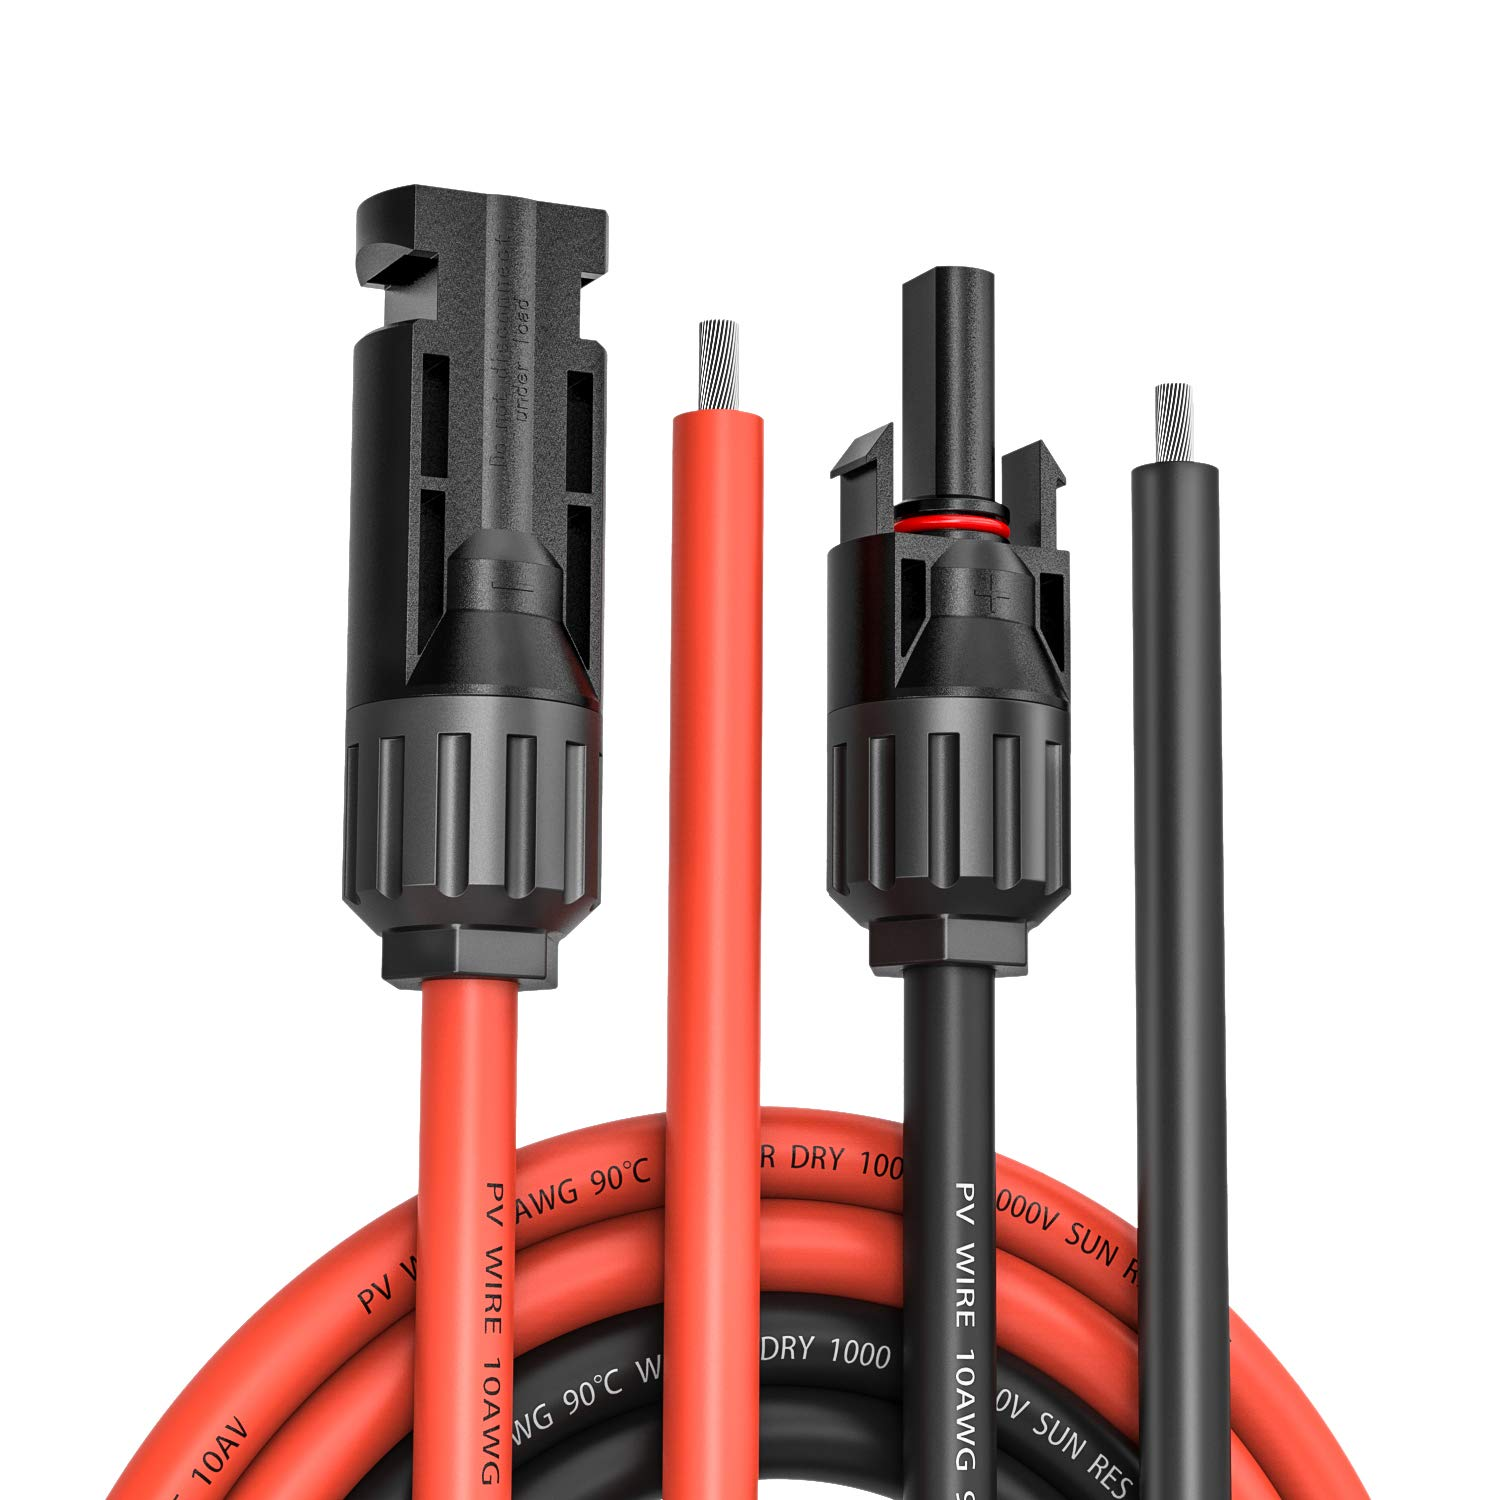 Kohree 20 Feet 10AWG Solar Panel Extension Cable Wire Kits with Waterproof MC4 Female and Male Connector (20FT Red + 20FT Black) by Kohree